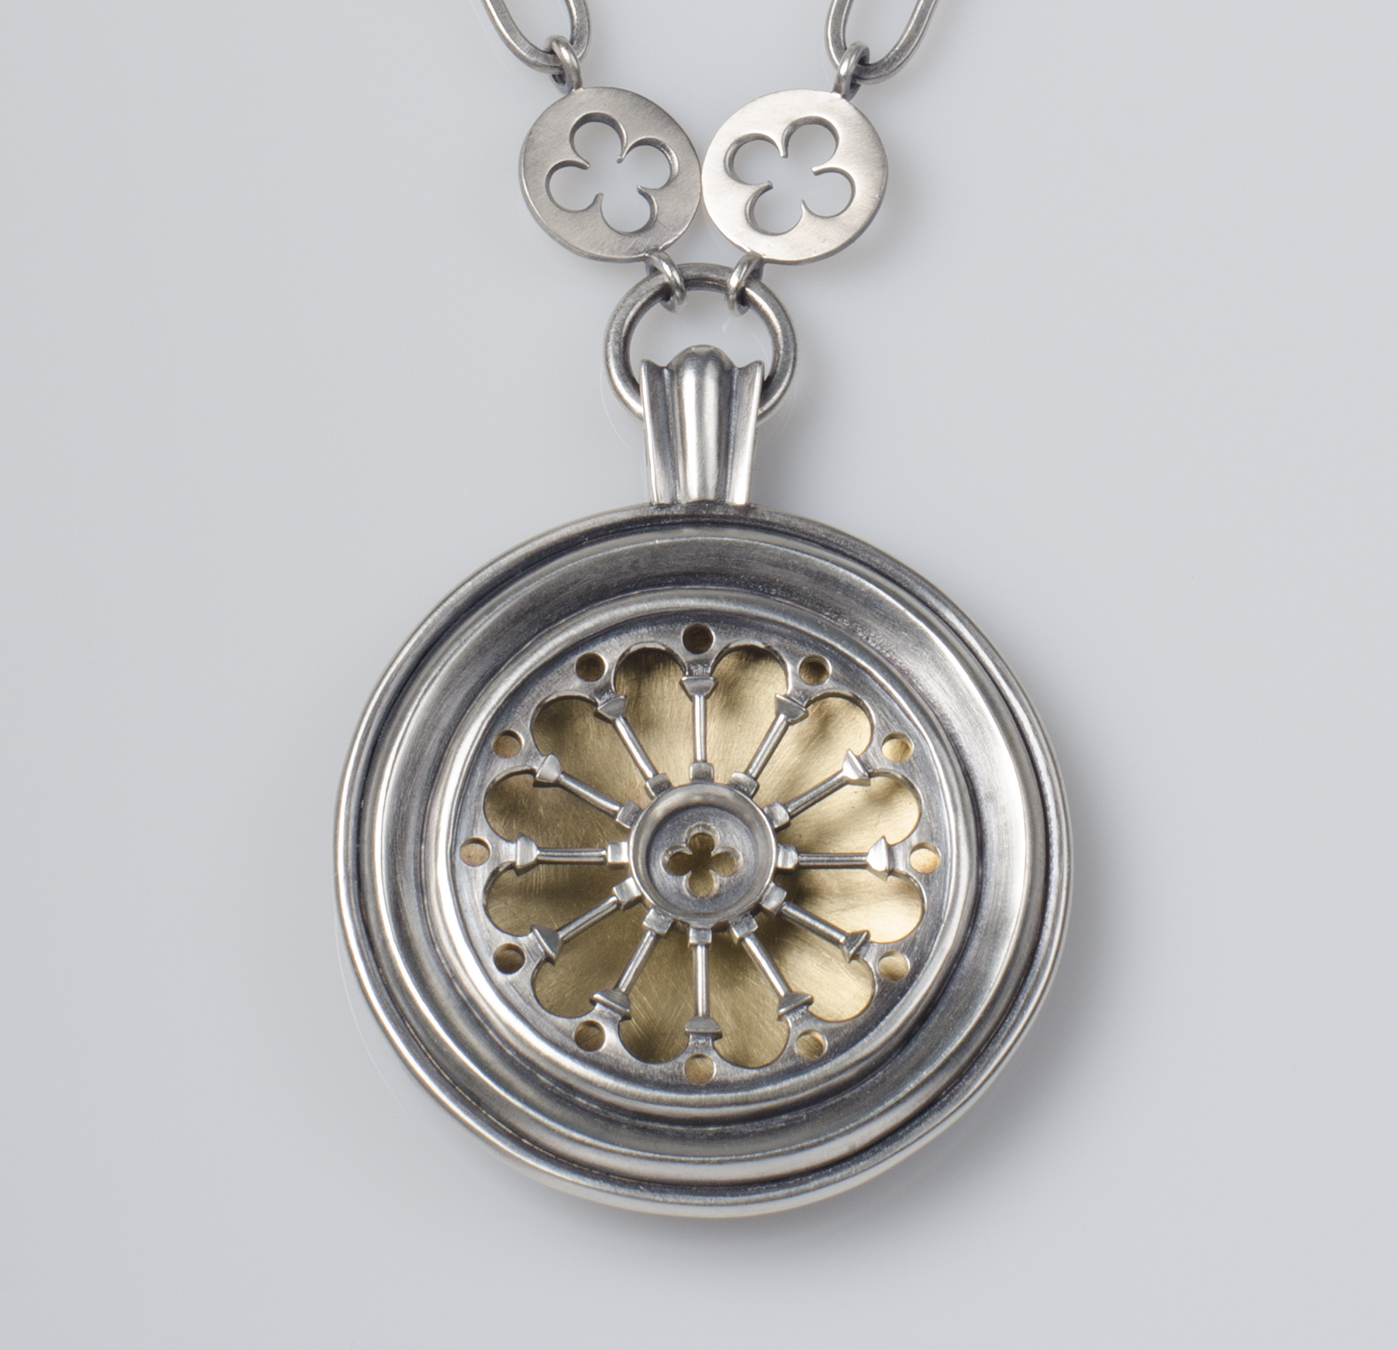 Rosette Window Necklace